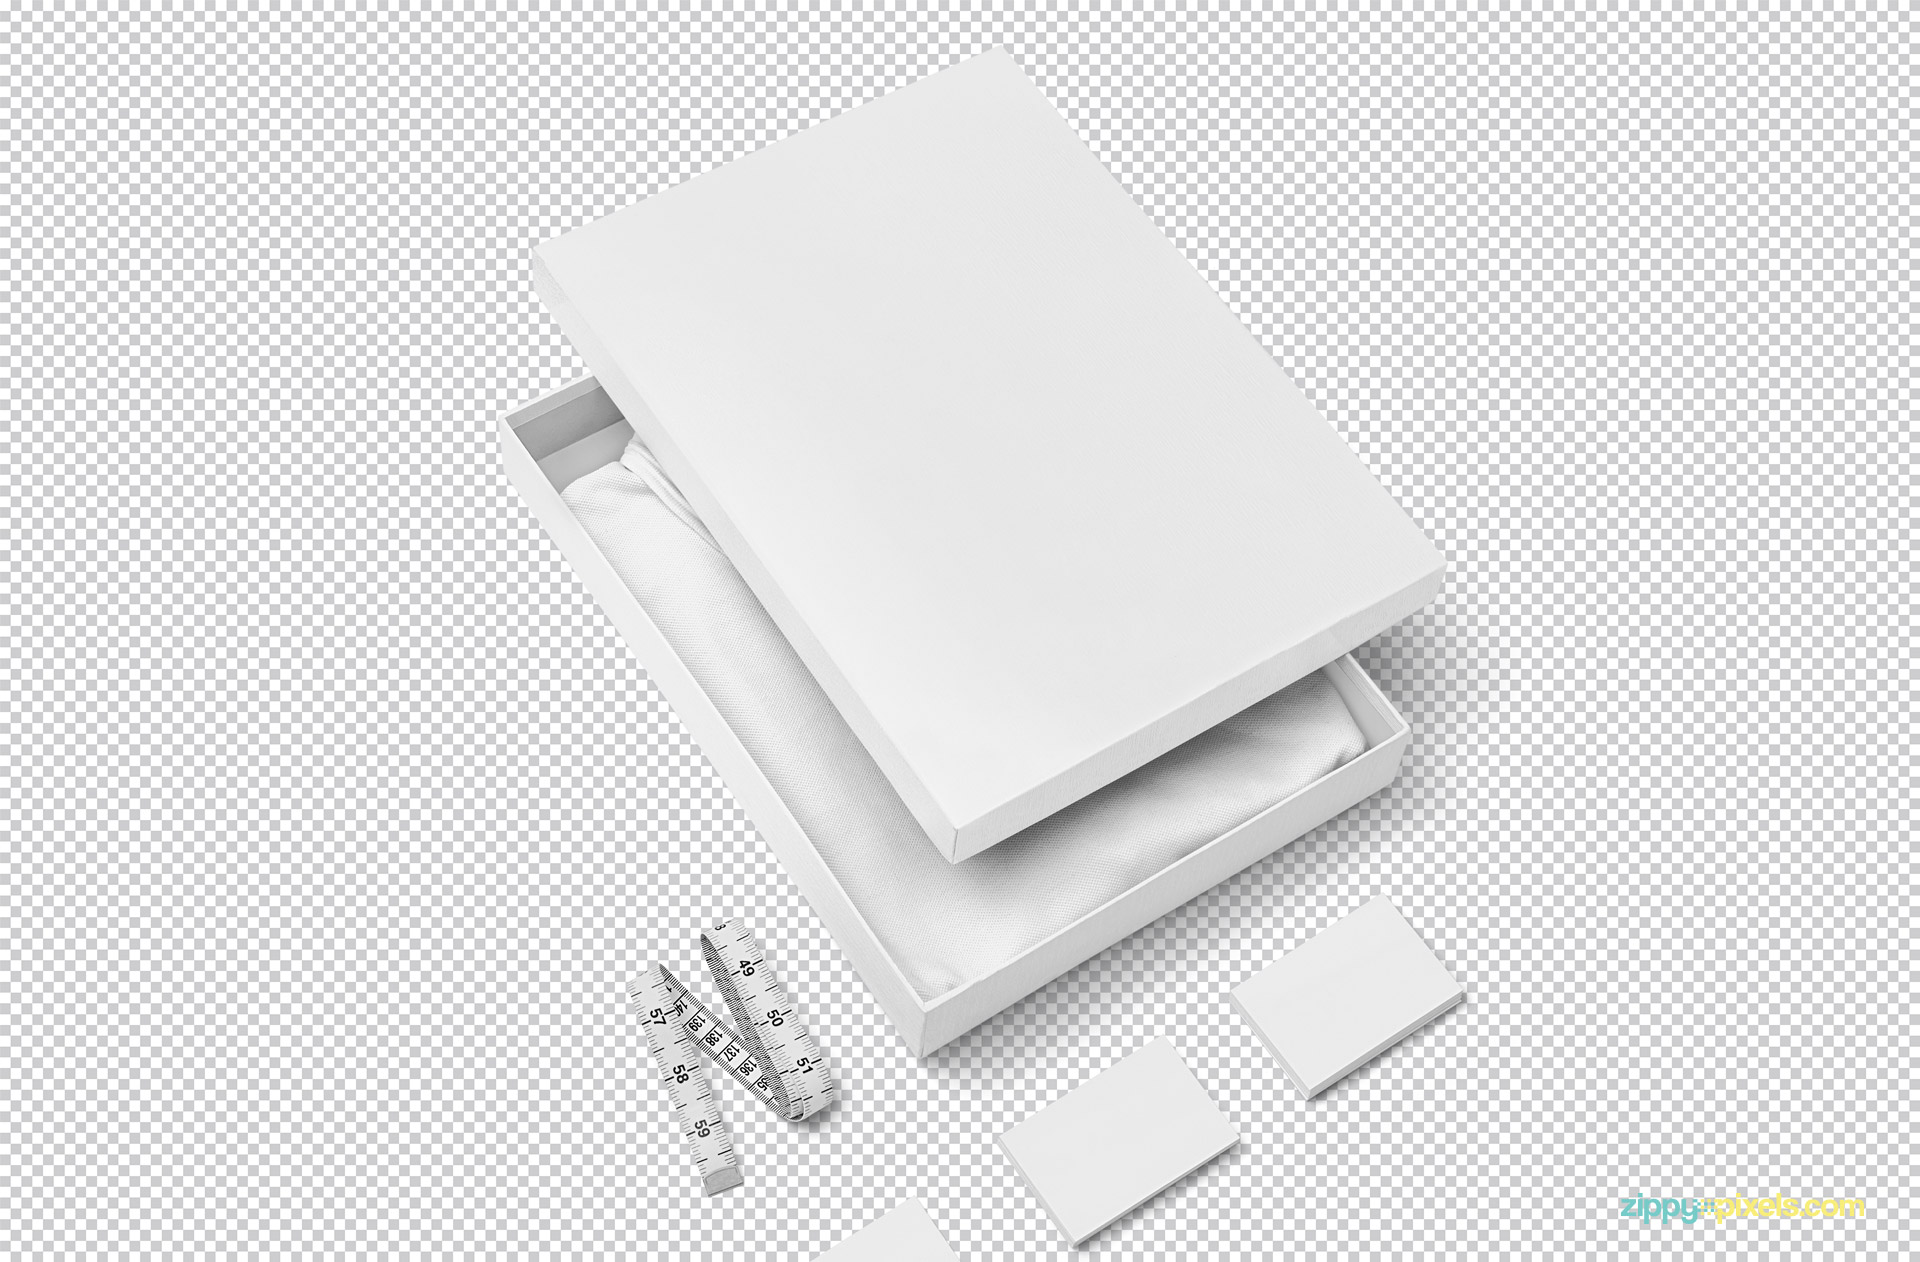 Plain white branding package mockup including t-shirt, box, business card and inches tape.